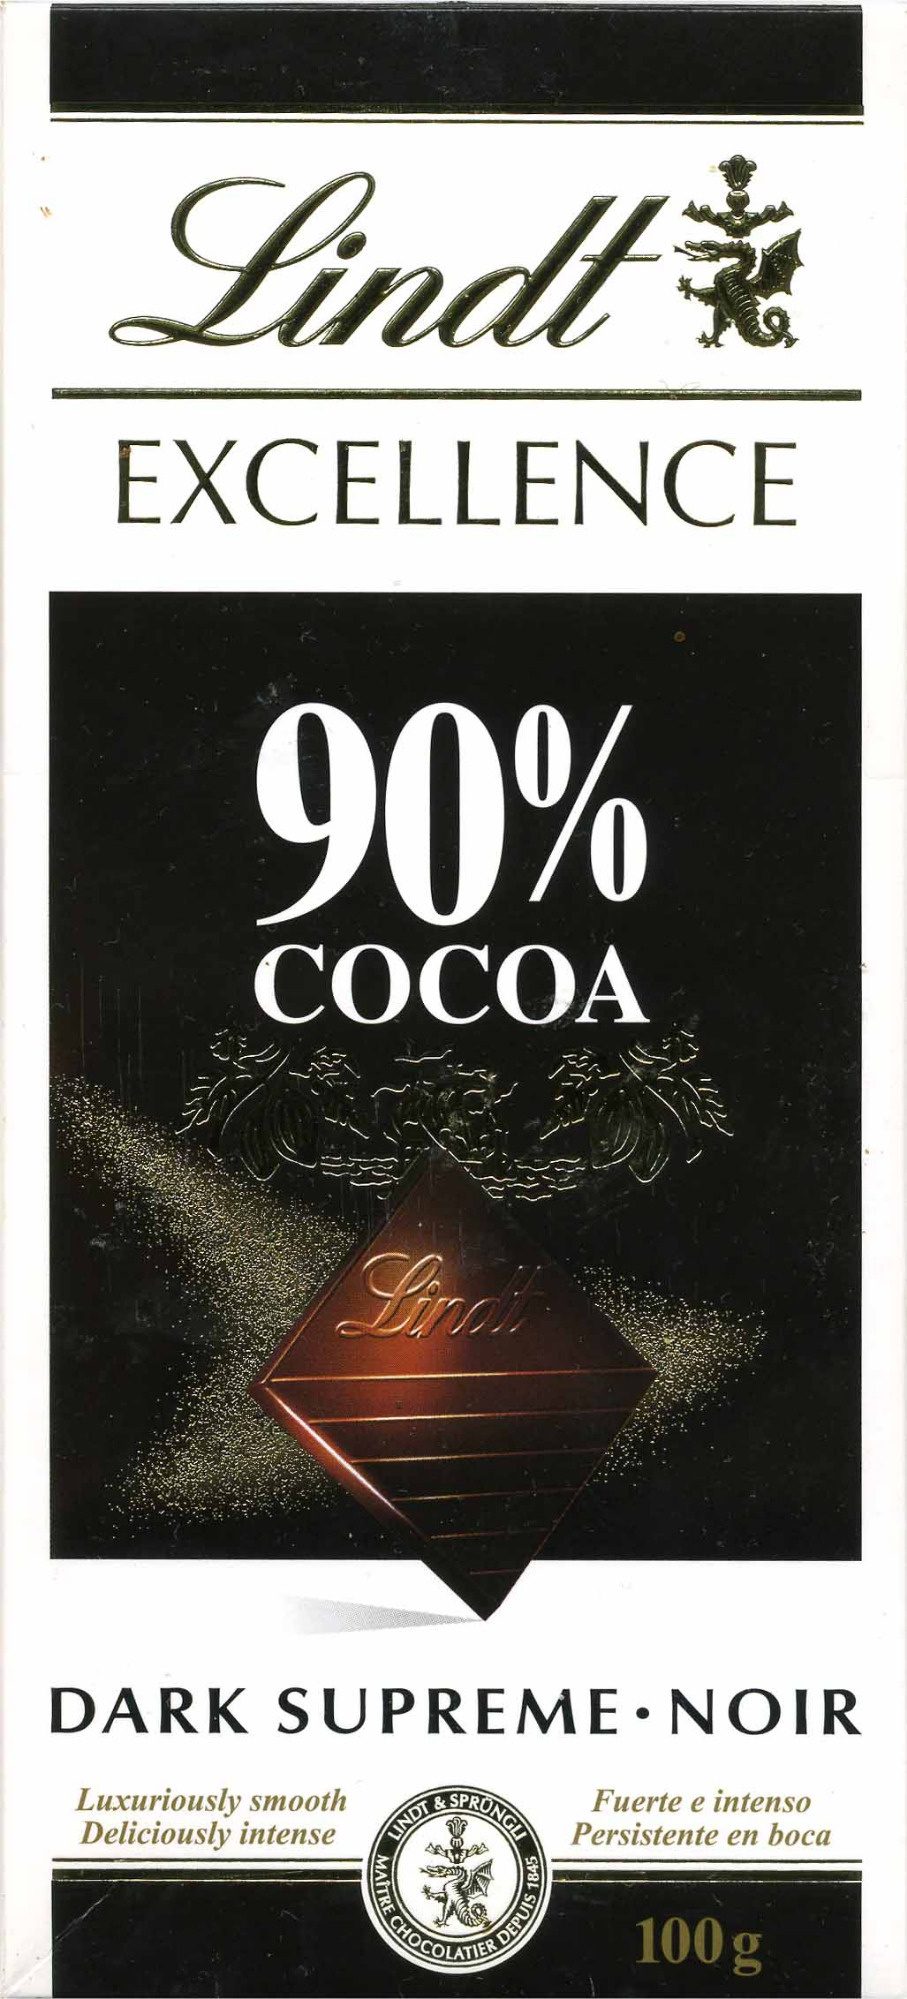 Dark Chocolate 90% cocoa - Product